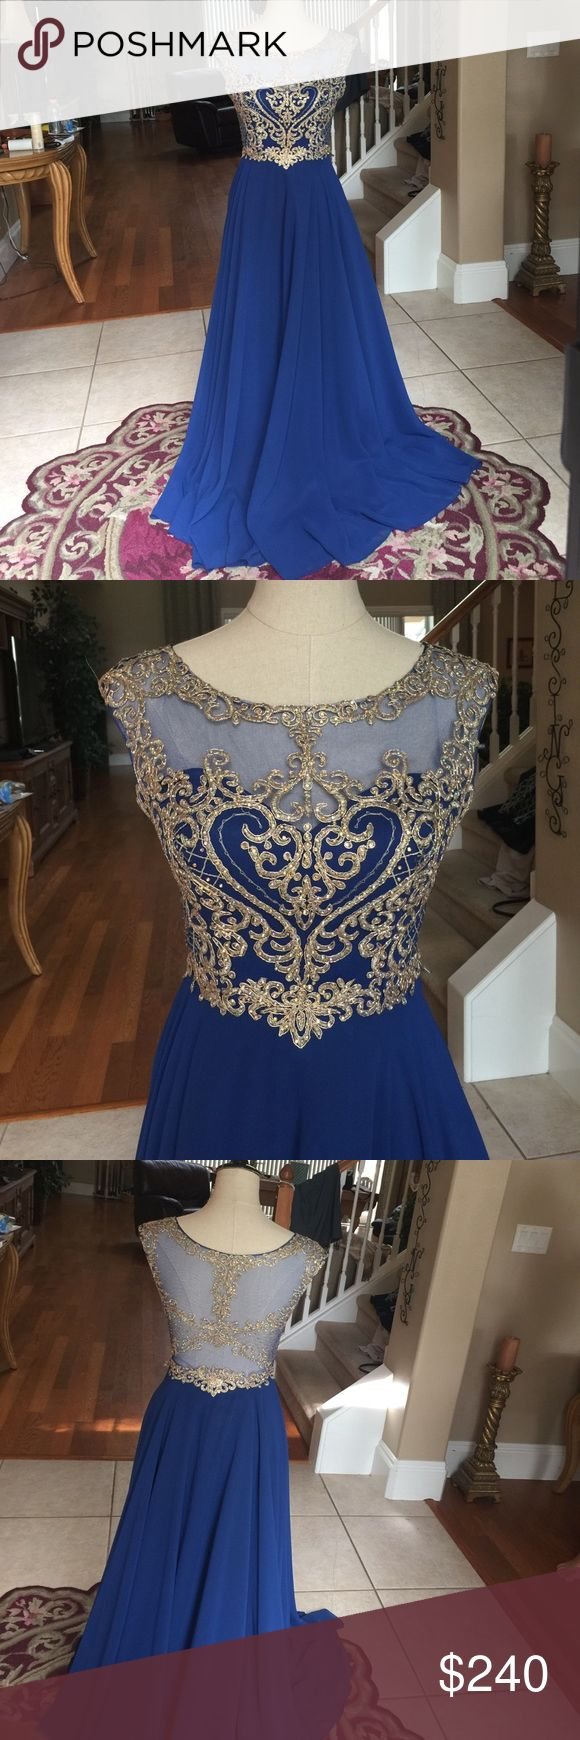 Elegant blue and gold prom dress Beautiful xsmall Royal blue prom dress! It has not altered at all and is practically brand new! I wore it to prom 2017 and got so many compliments! Purchased at a prom boutique in Tampa for $335 and selling for $240!  This dress is to die for  Fiesta Fashion Dresses Prom